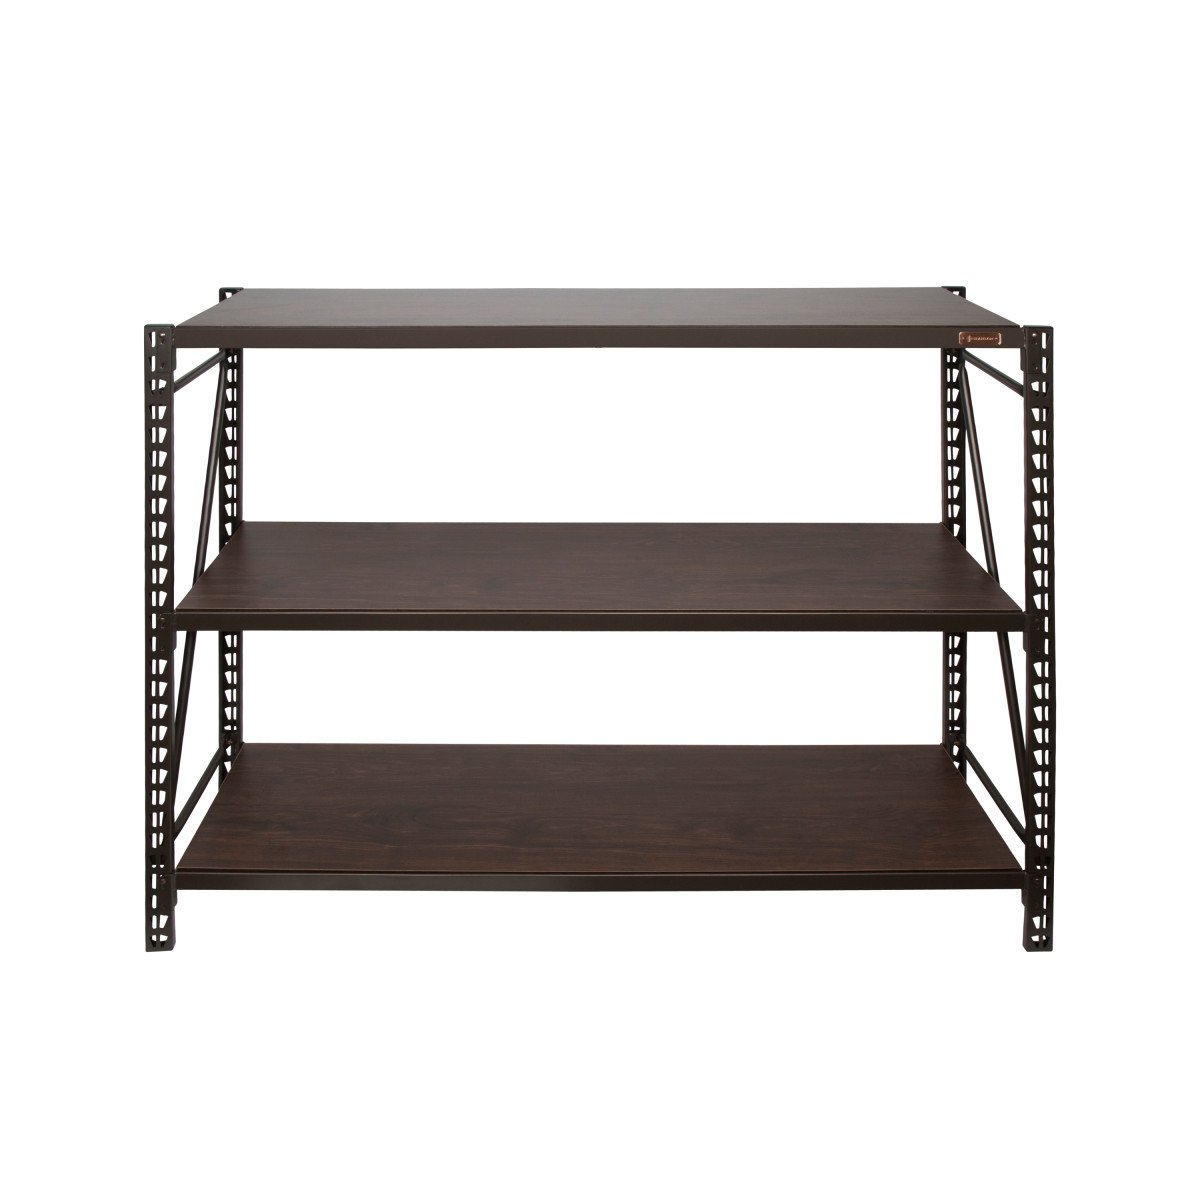 J. HANLON 93089 Gardener - Petite Rack in Bronze, 3 Shelves by J. HANLON